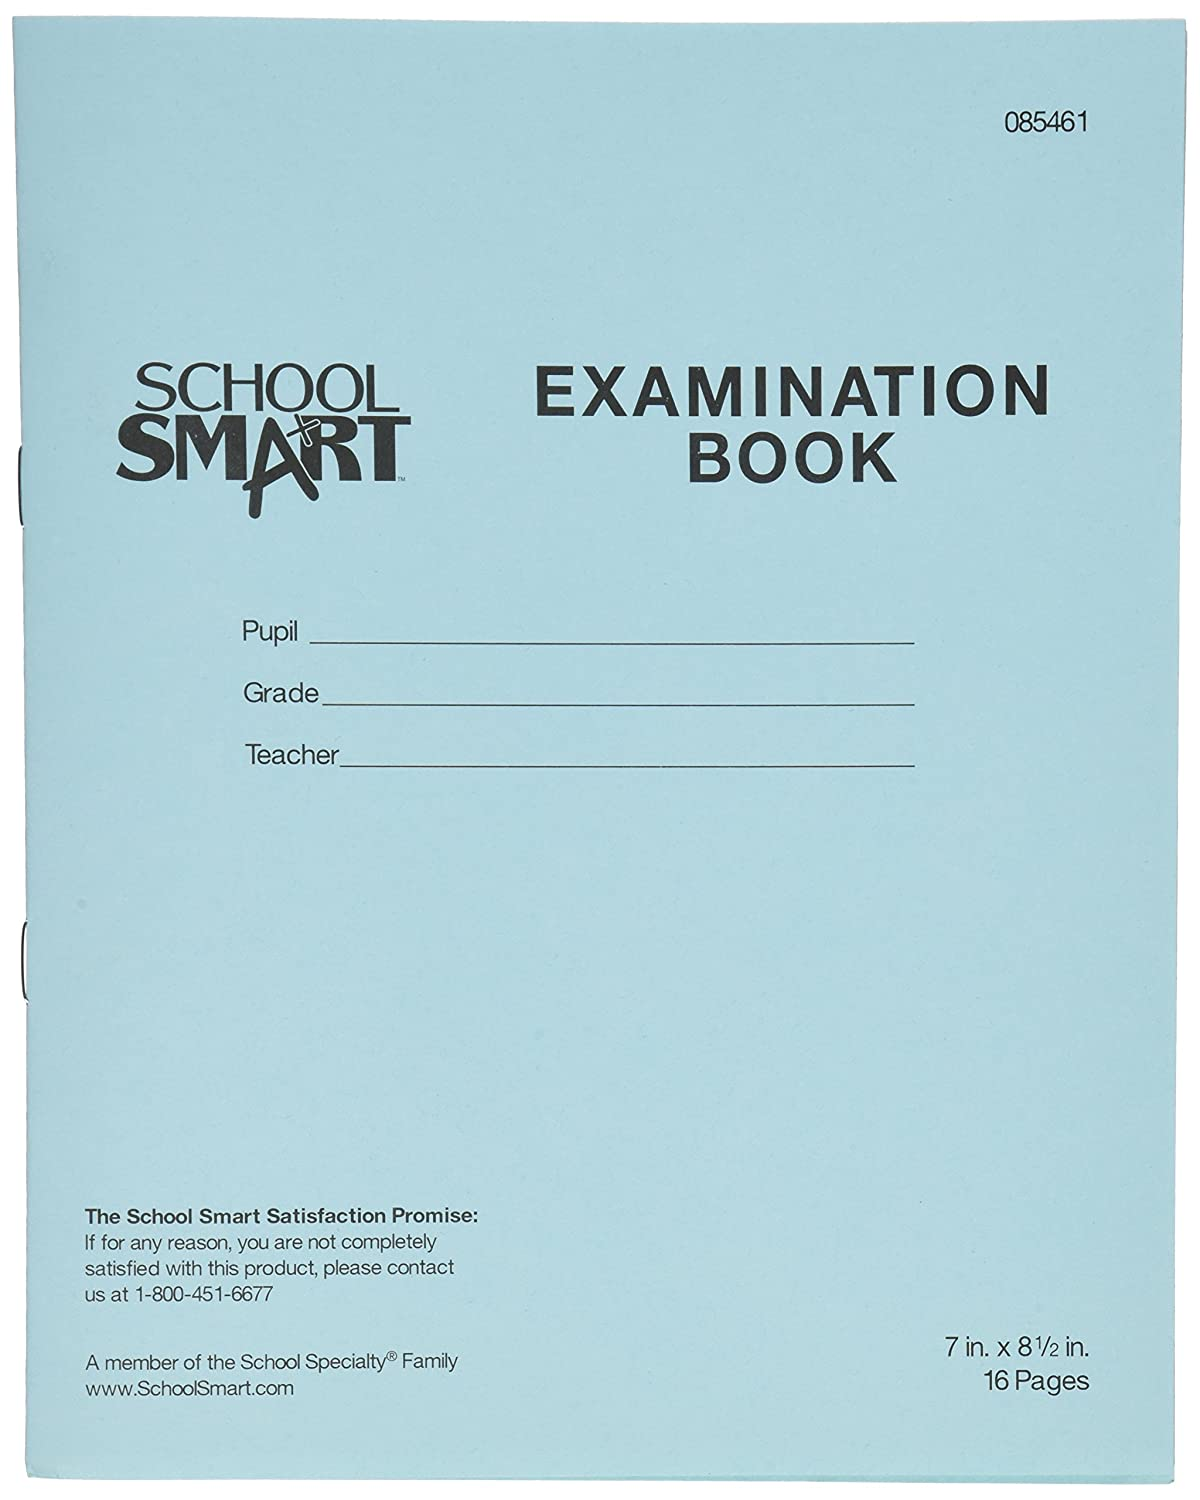 School Smart Ruled Examination Blue Books with Margin - 7 in x 8 1/2 in - Pack of 50, 16 Page Books School Specialty 085461